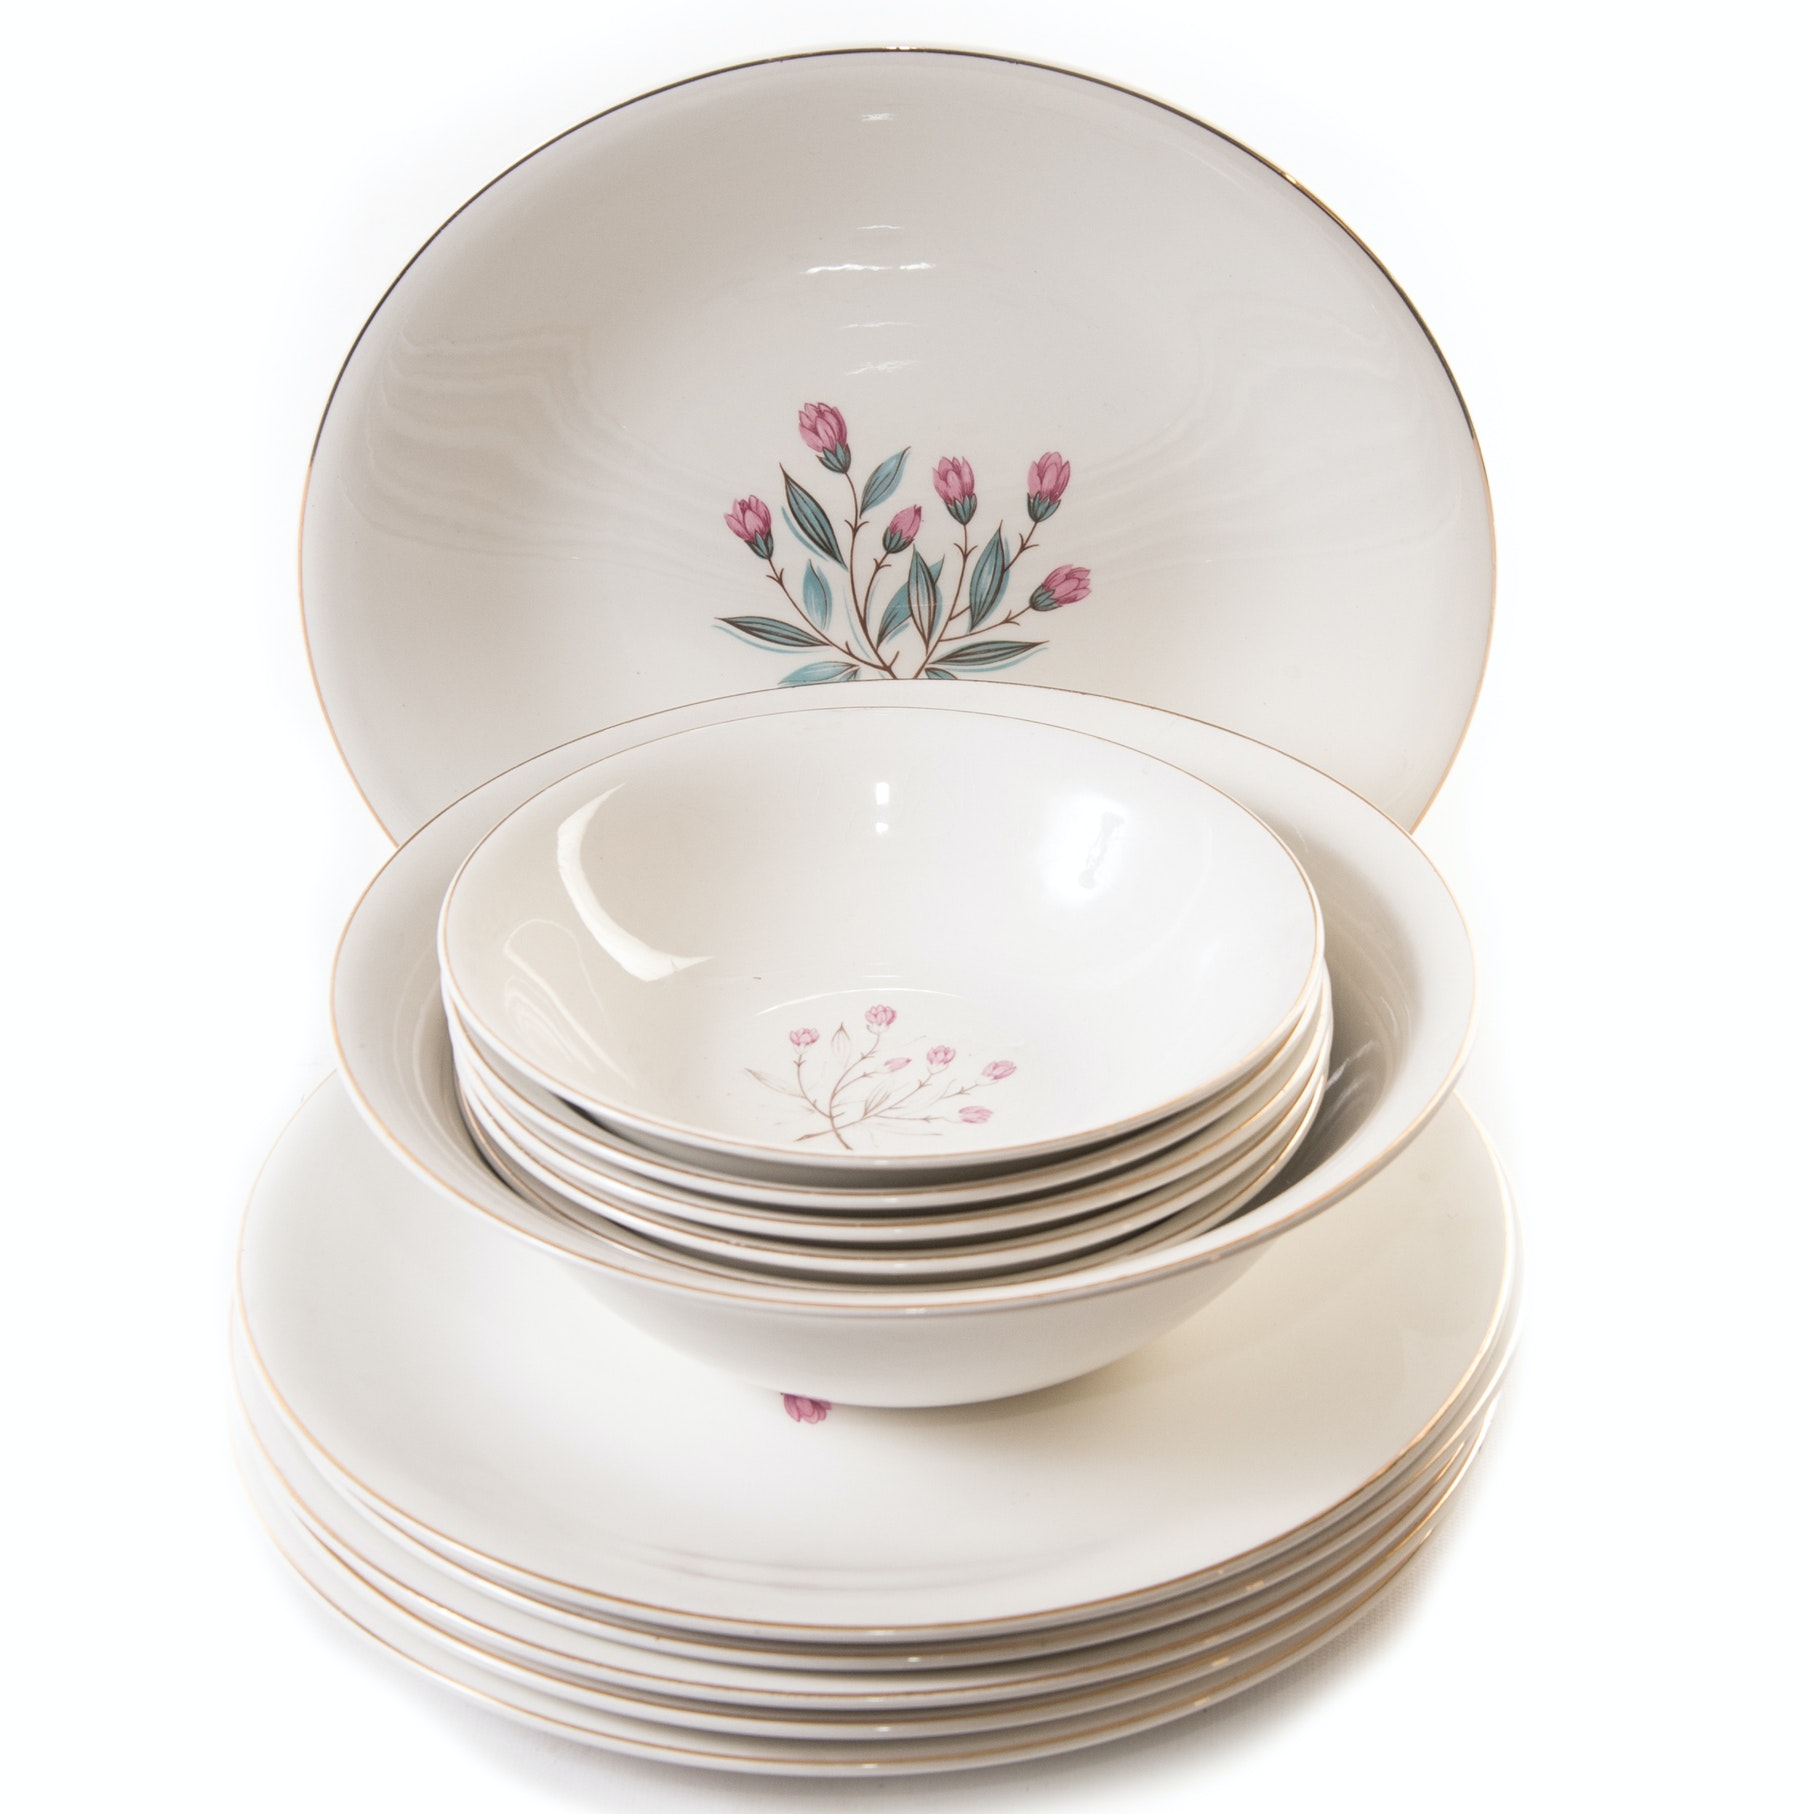 Wedgwood Porcelain China  sc 1 st  EBTH.com & Vintage Tableware Auction | Antique Tableware Auctions in Mid ...